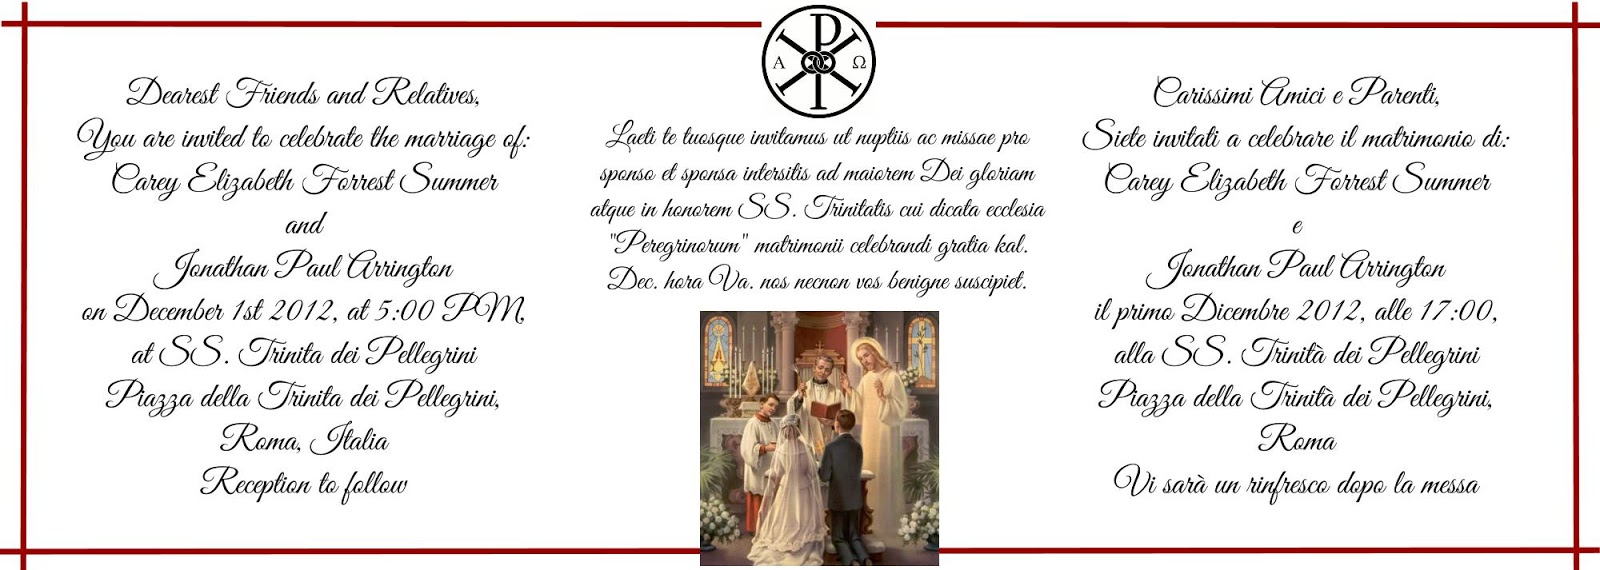 How To Write Invitation For Wedding: Orbis Catholicus Secundus: How To Write A Wedding